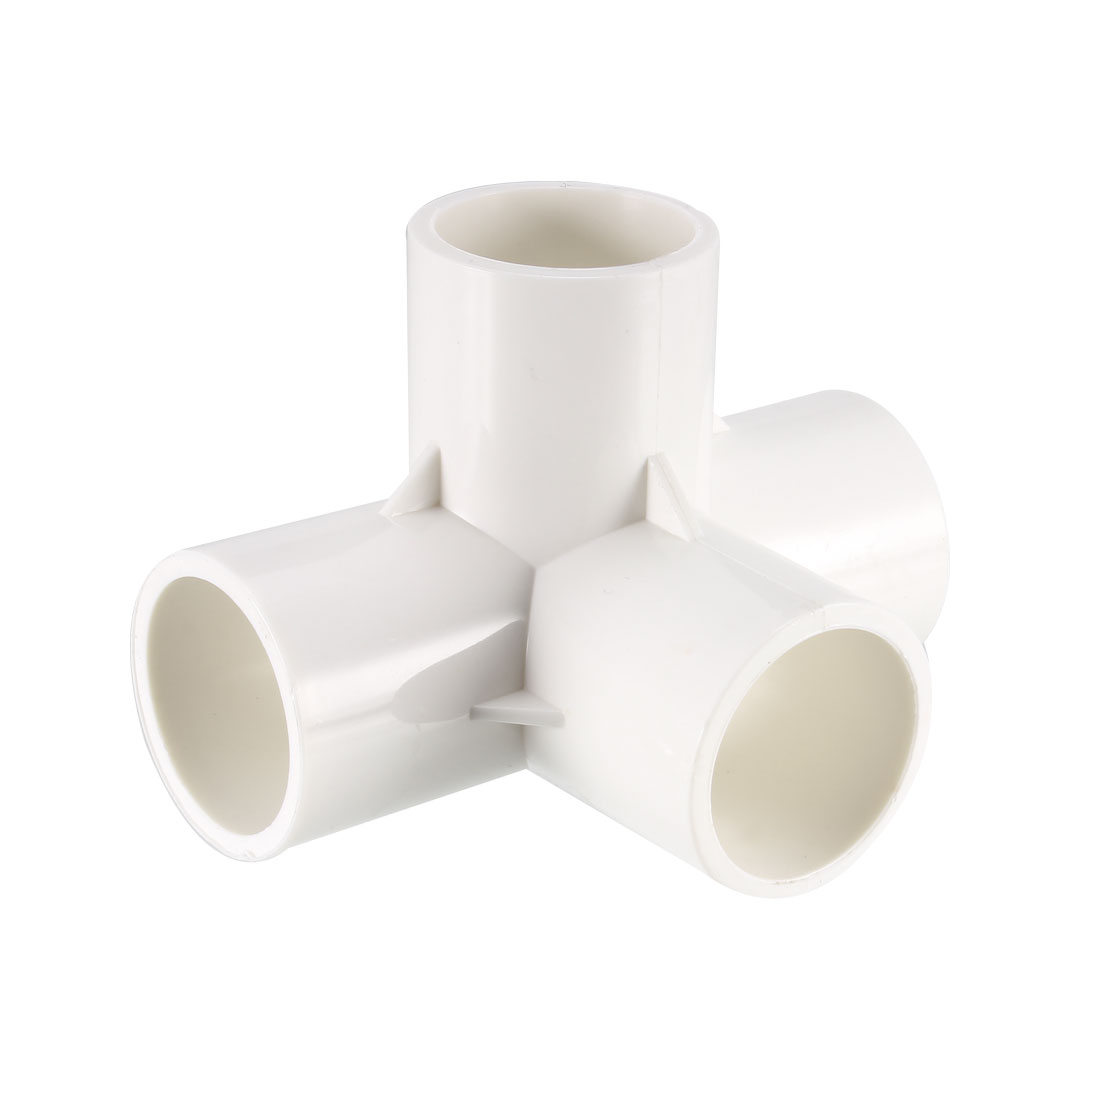 4 Way 25mm Tee PVC Fitting Elbow - PVC Furniture - PVC Elbow Fittings 2Pcs